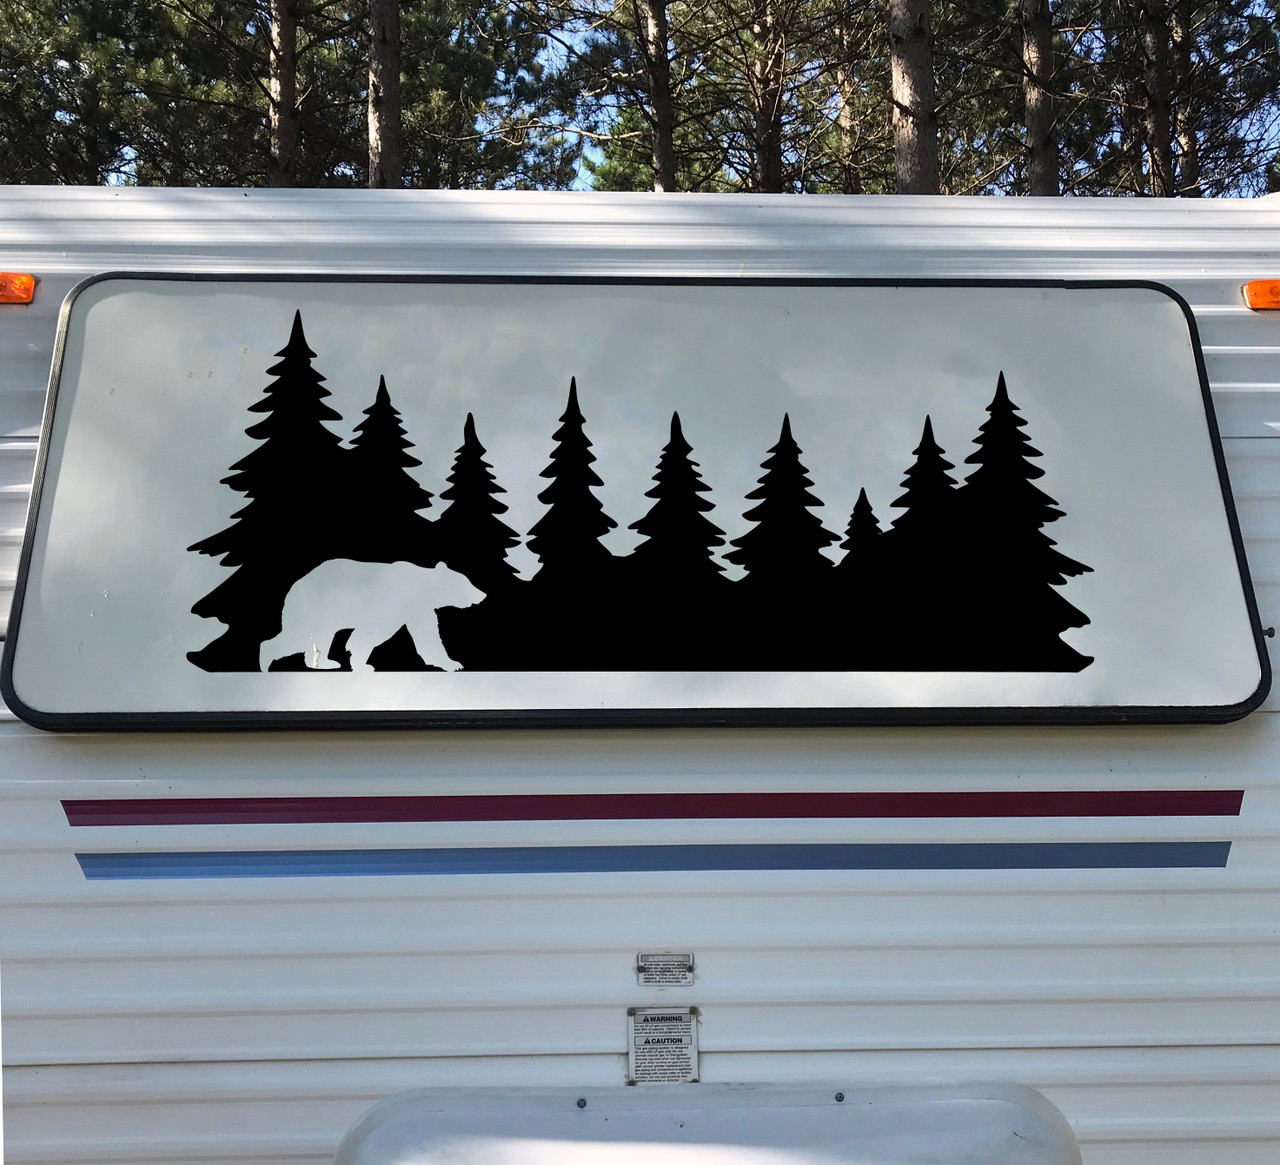 Bear in Treeline V2 Vinyl Decal - Forest Grizzly Trees Camping Hiking - Die Cut Sticker